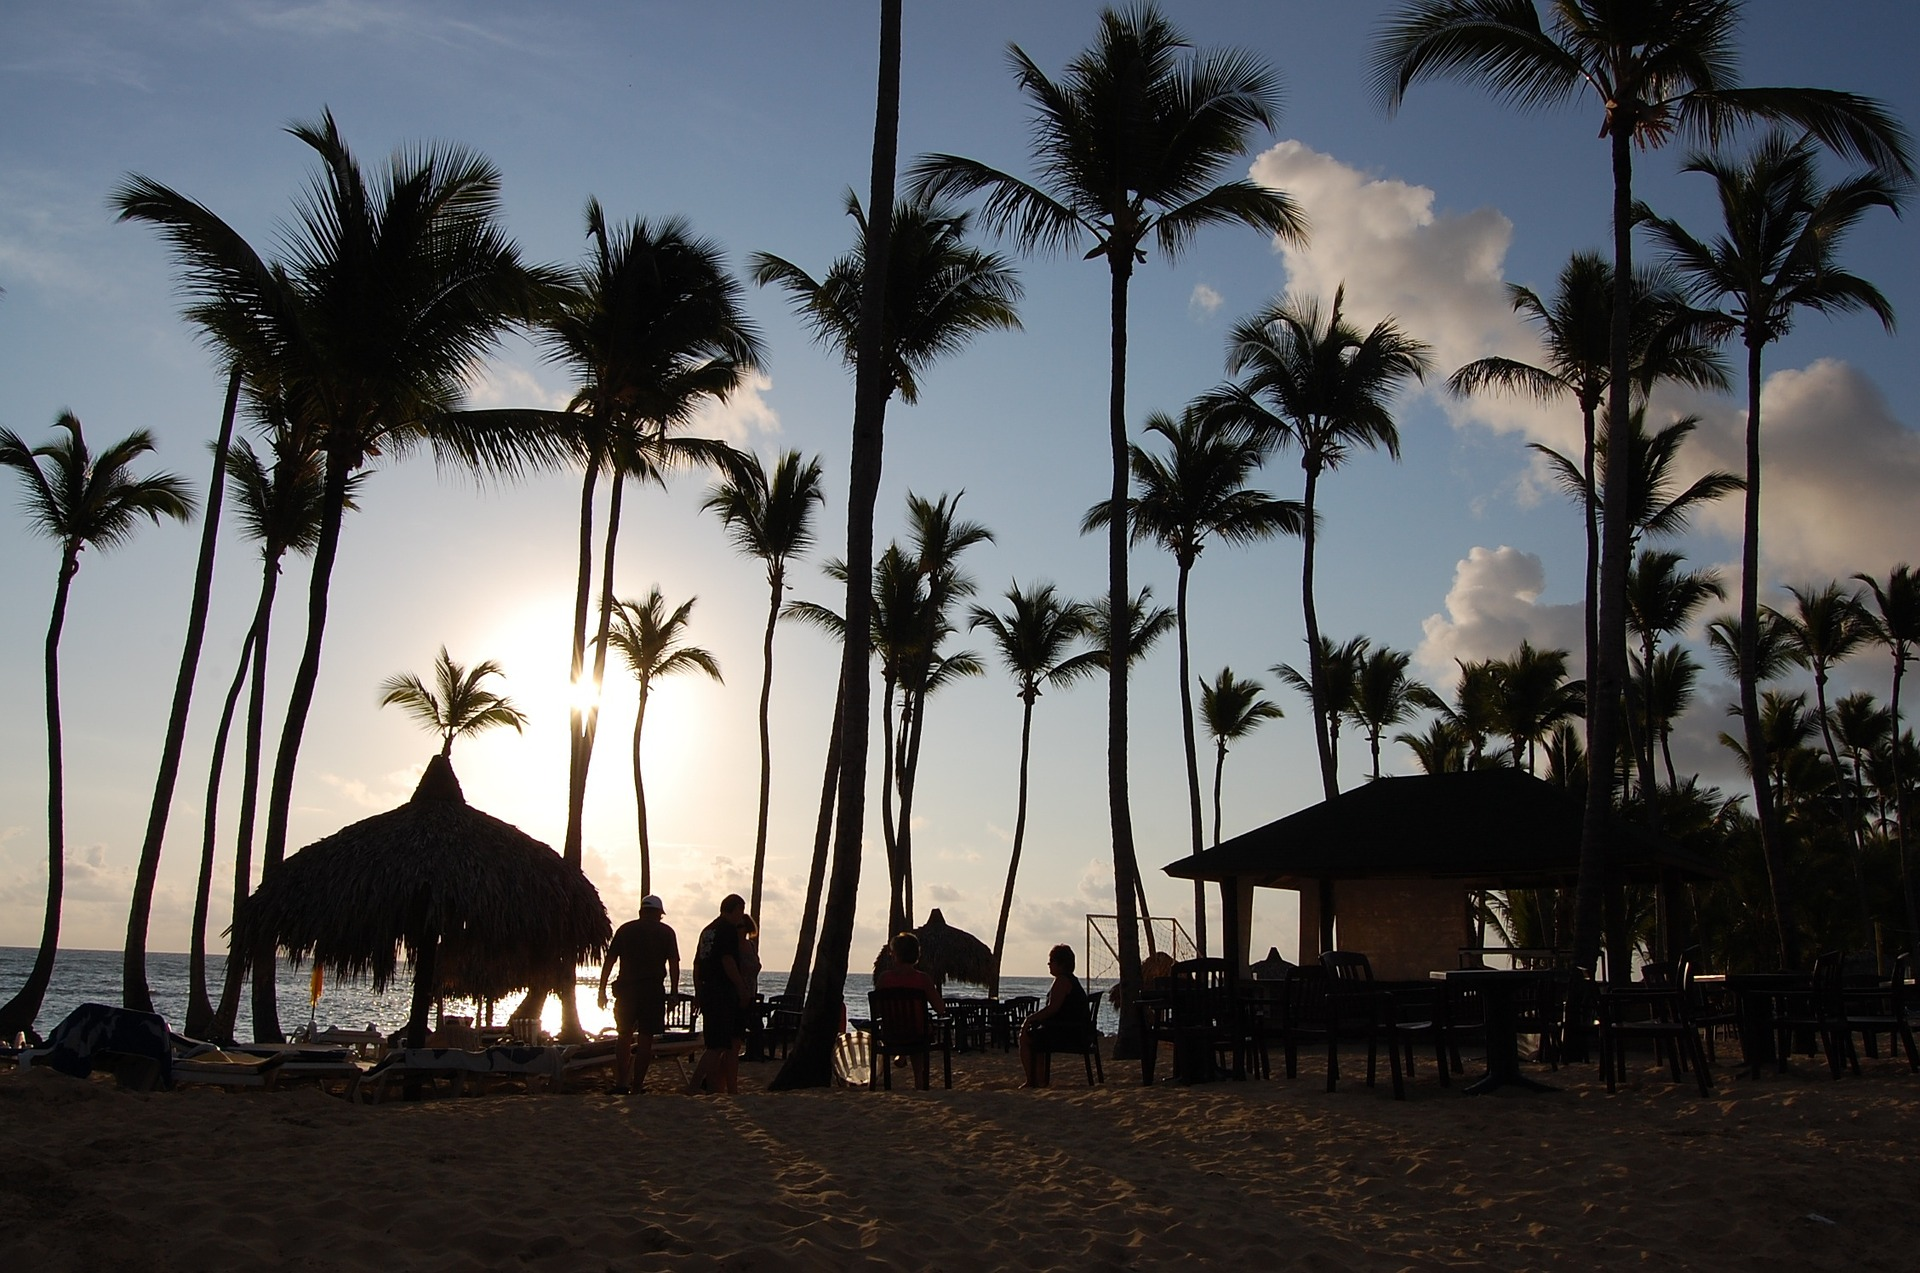 sunset_punta cana